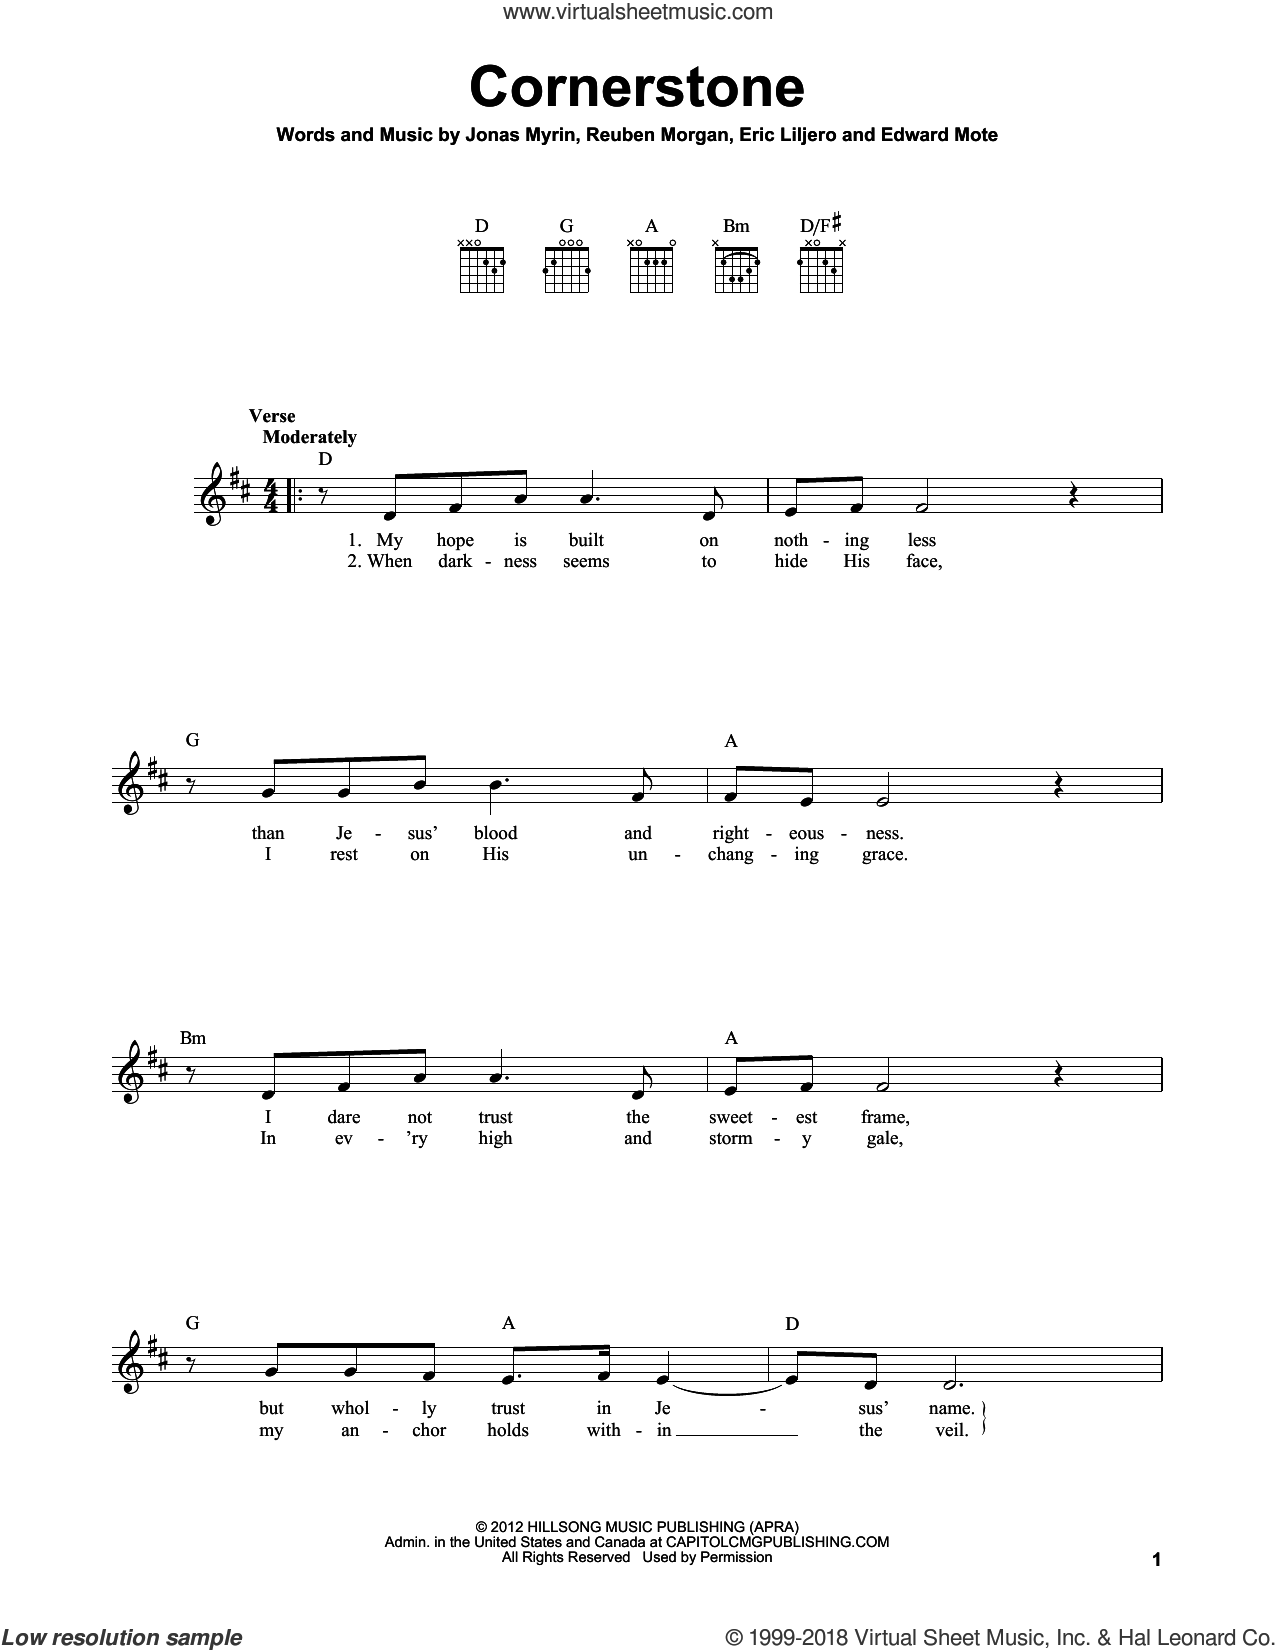 Cornerstone arctic monkeys piano sheet music piano ideas arctic monkeys piano sheet music ideas hexwebz Choice Image